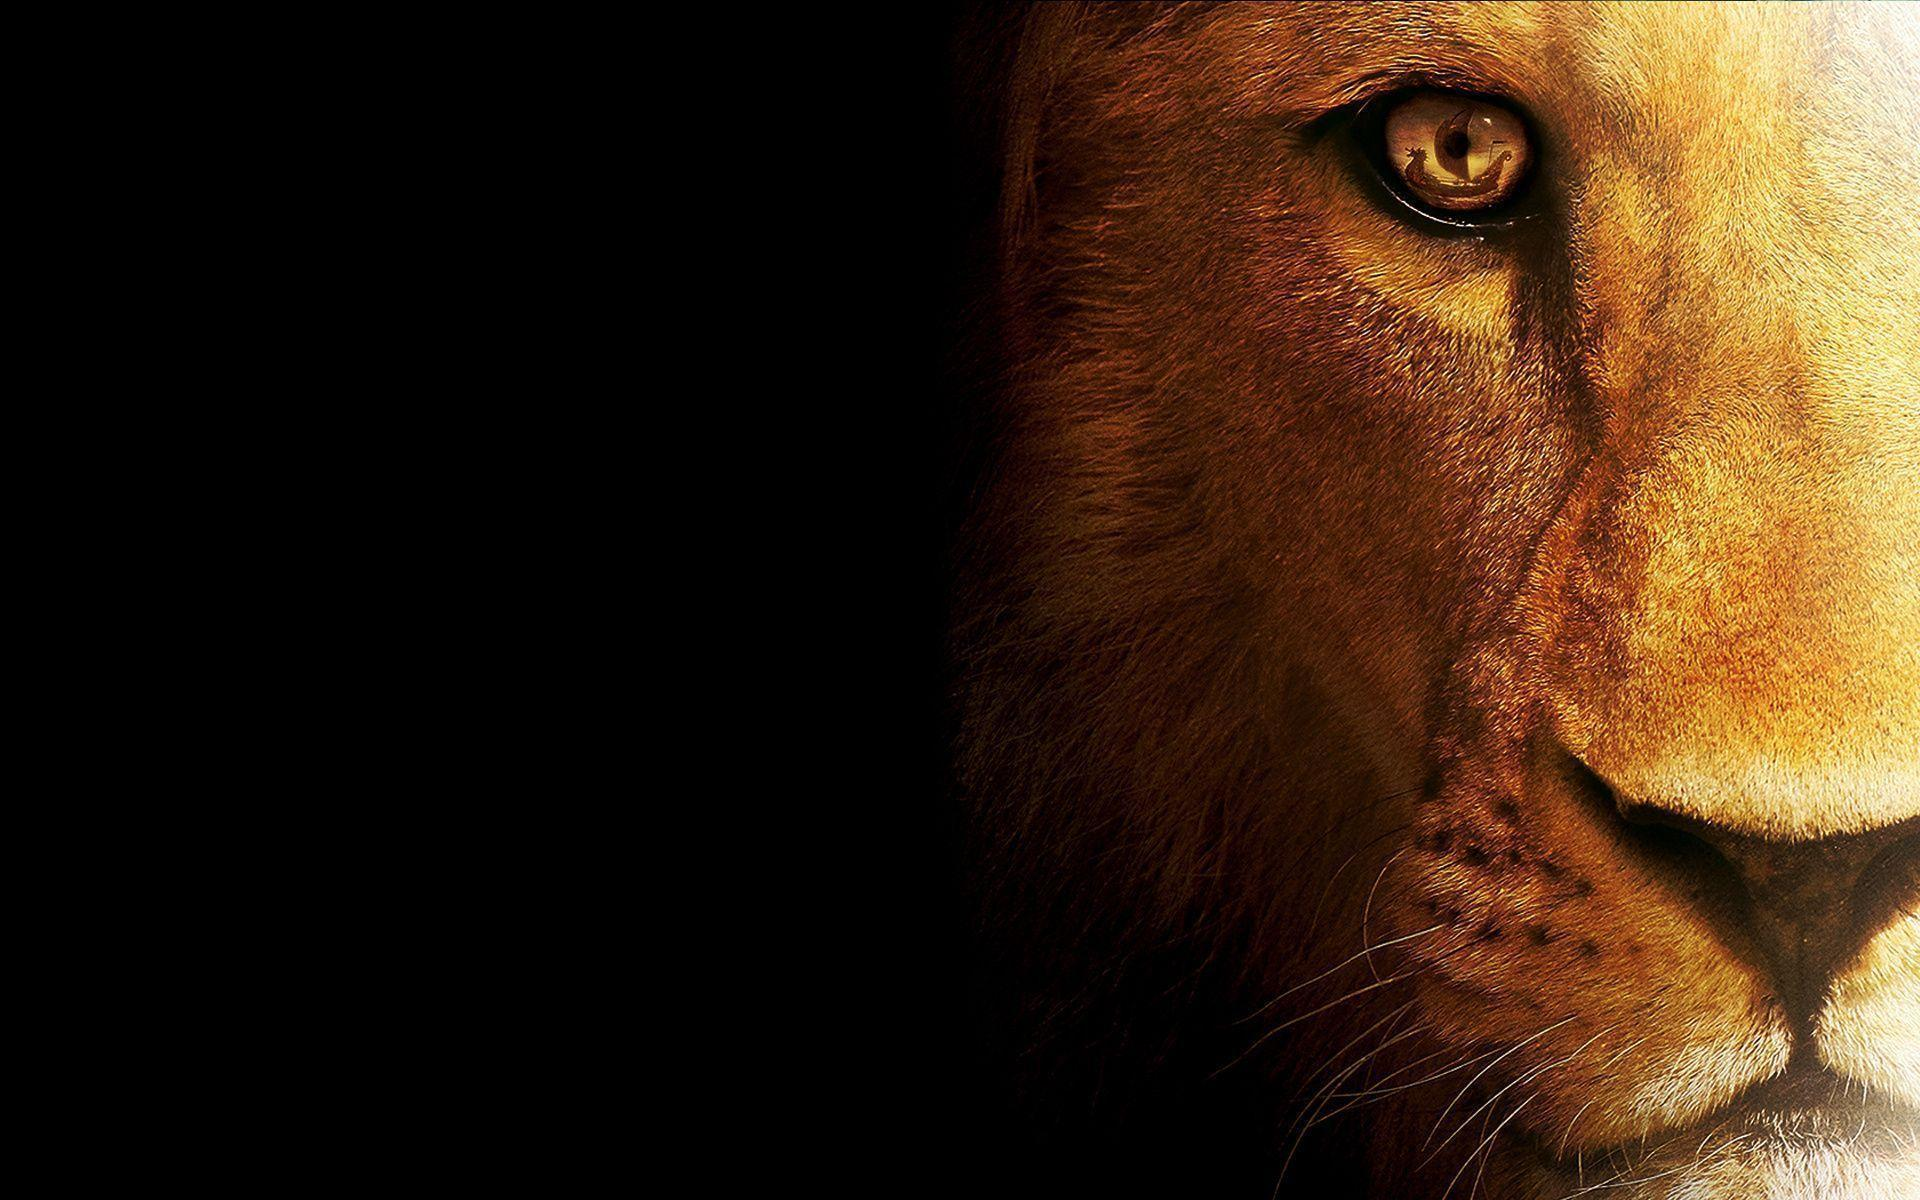 Lion Face Wallpapers 1920x1200